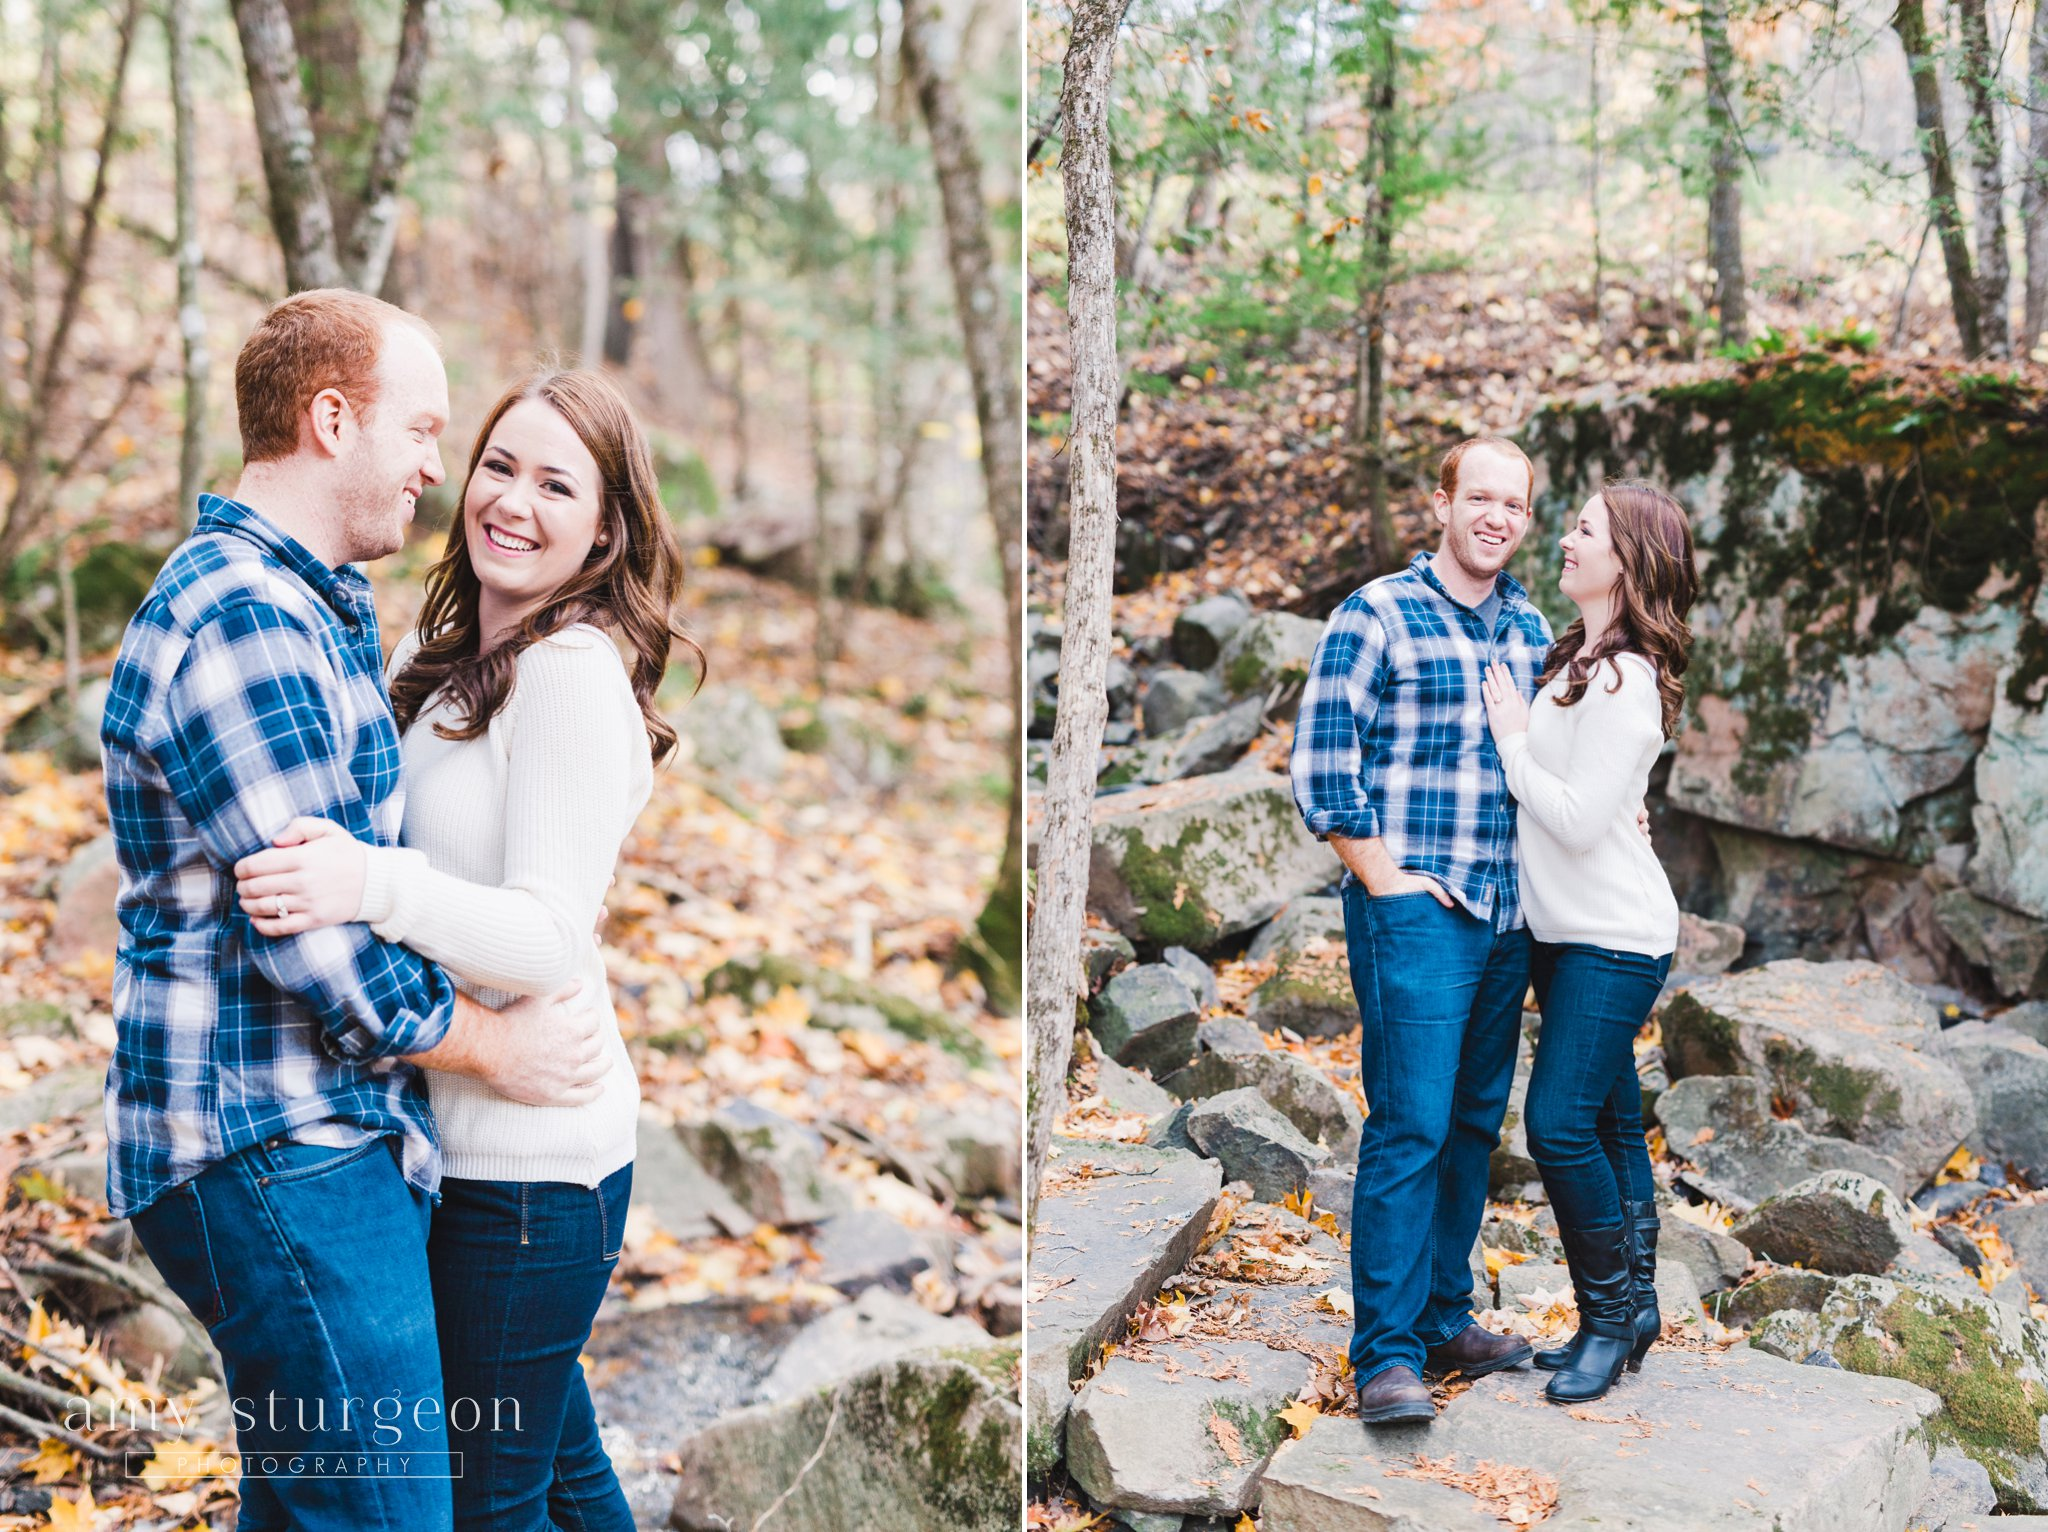 Ottawa and Wakefield Engagement Photos by the covered bridge